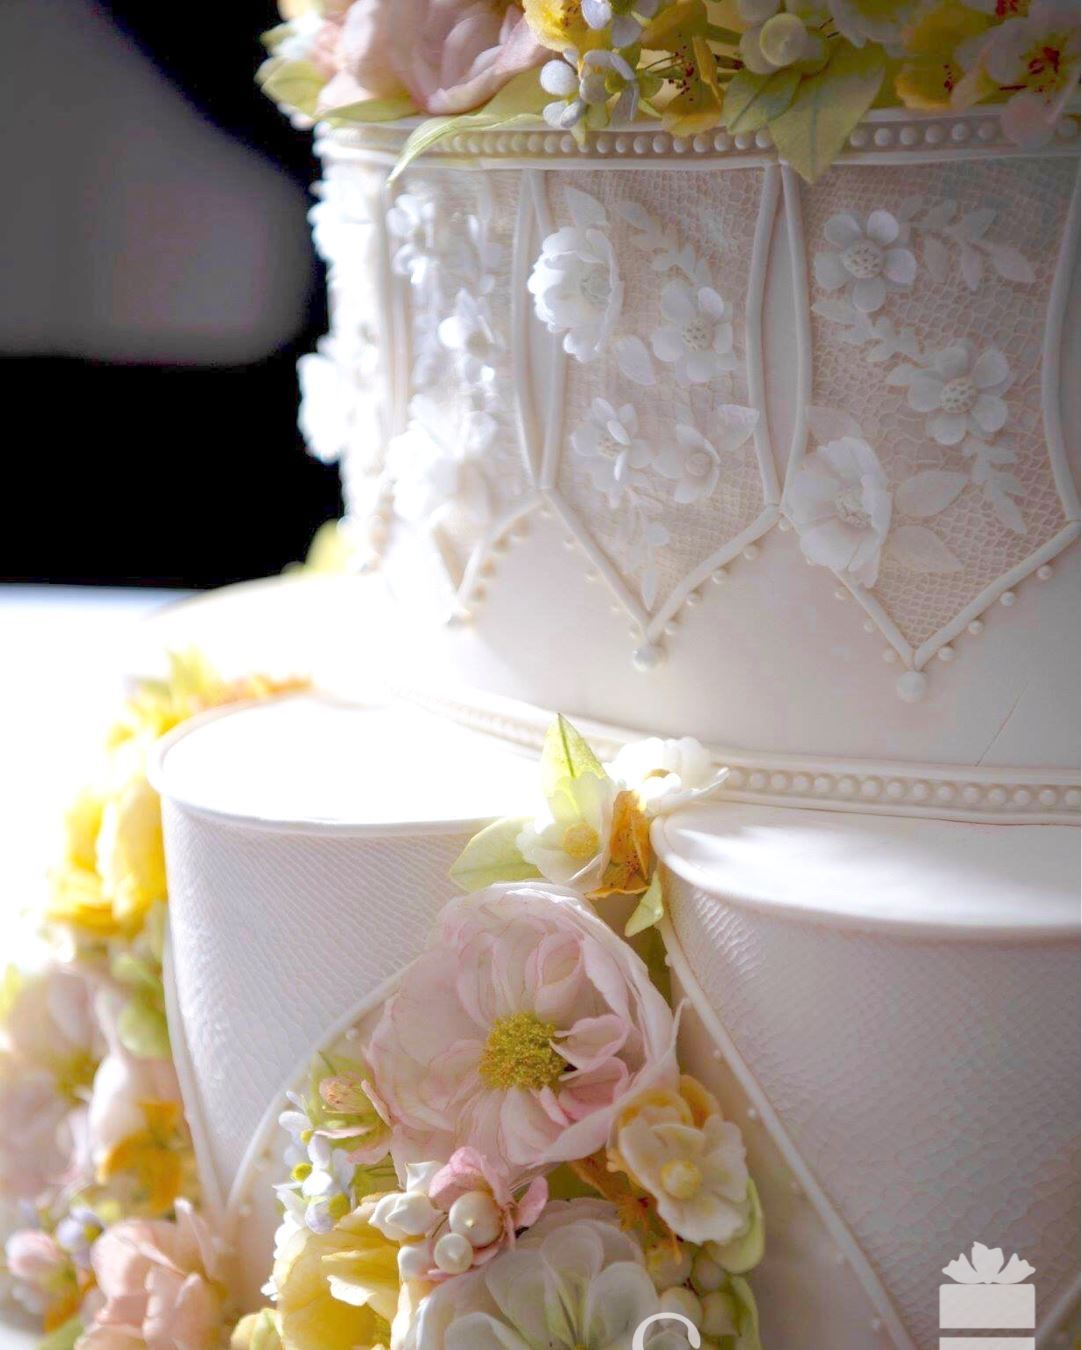 Top 10 Wedding Cake Suppliers In Melbourne: Sweet Affection Cake Designs